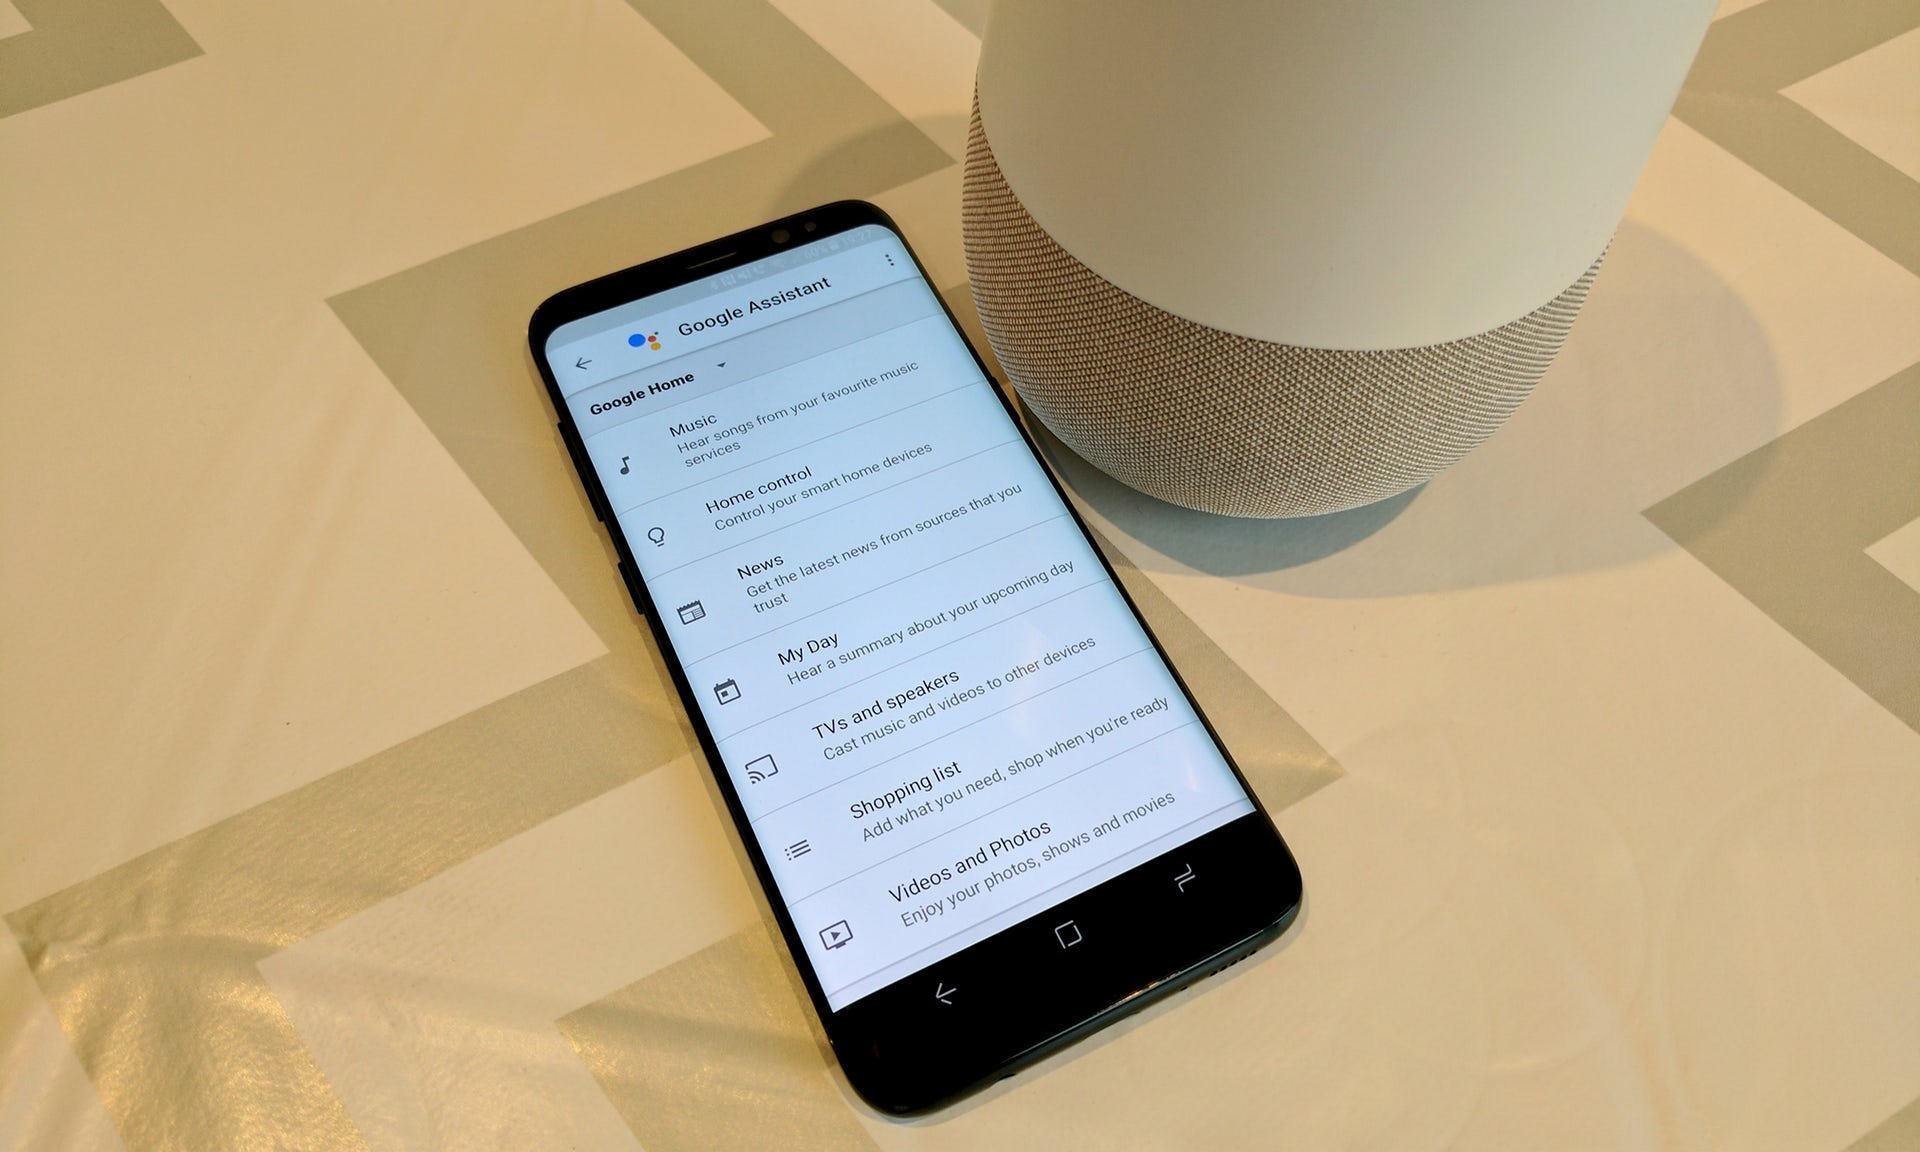 Configuring the various devices and services hooked up to Home is simple using the Google Home app for Android or iOS.